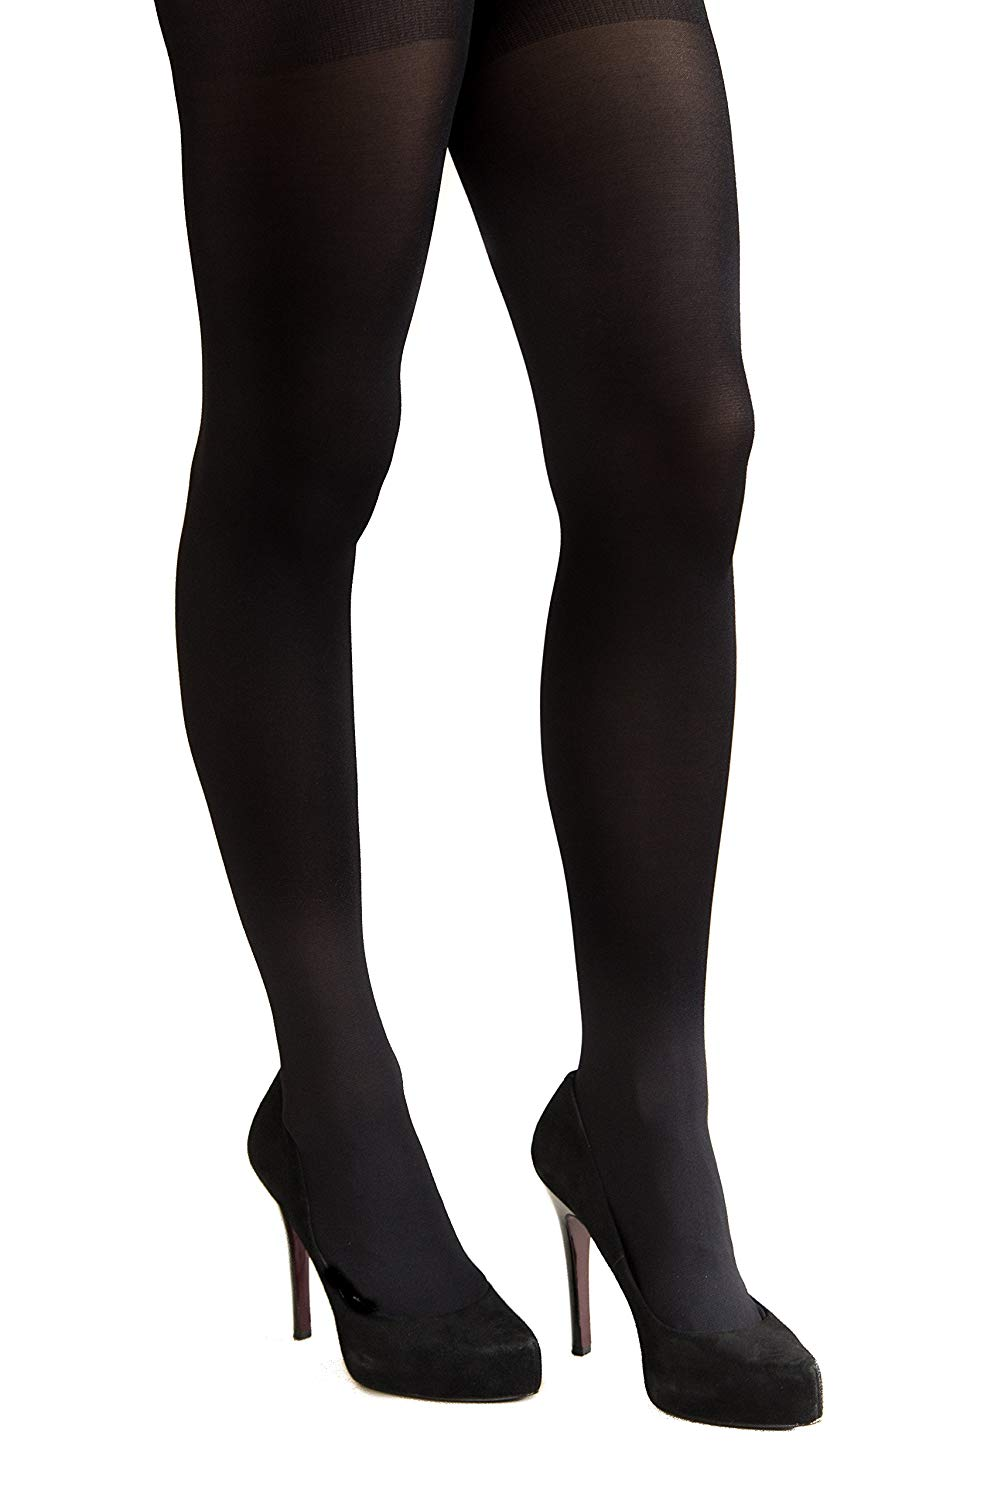 c45146892f2cb Get Quotations · Coquettes Women's Silky Opaque Total Control Top Tights  Nero